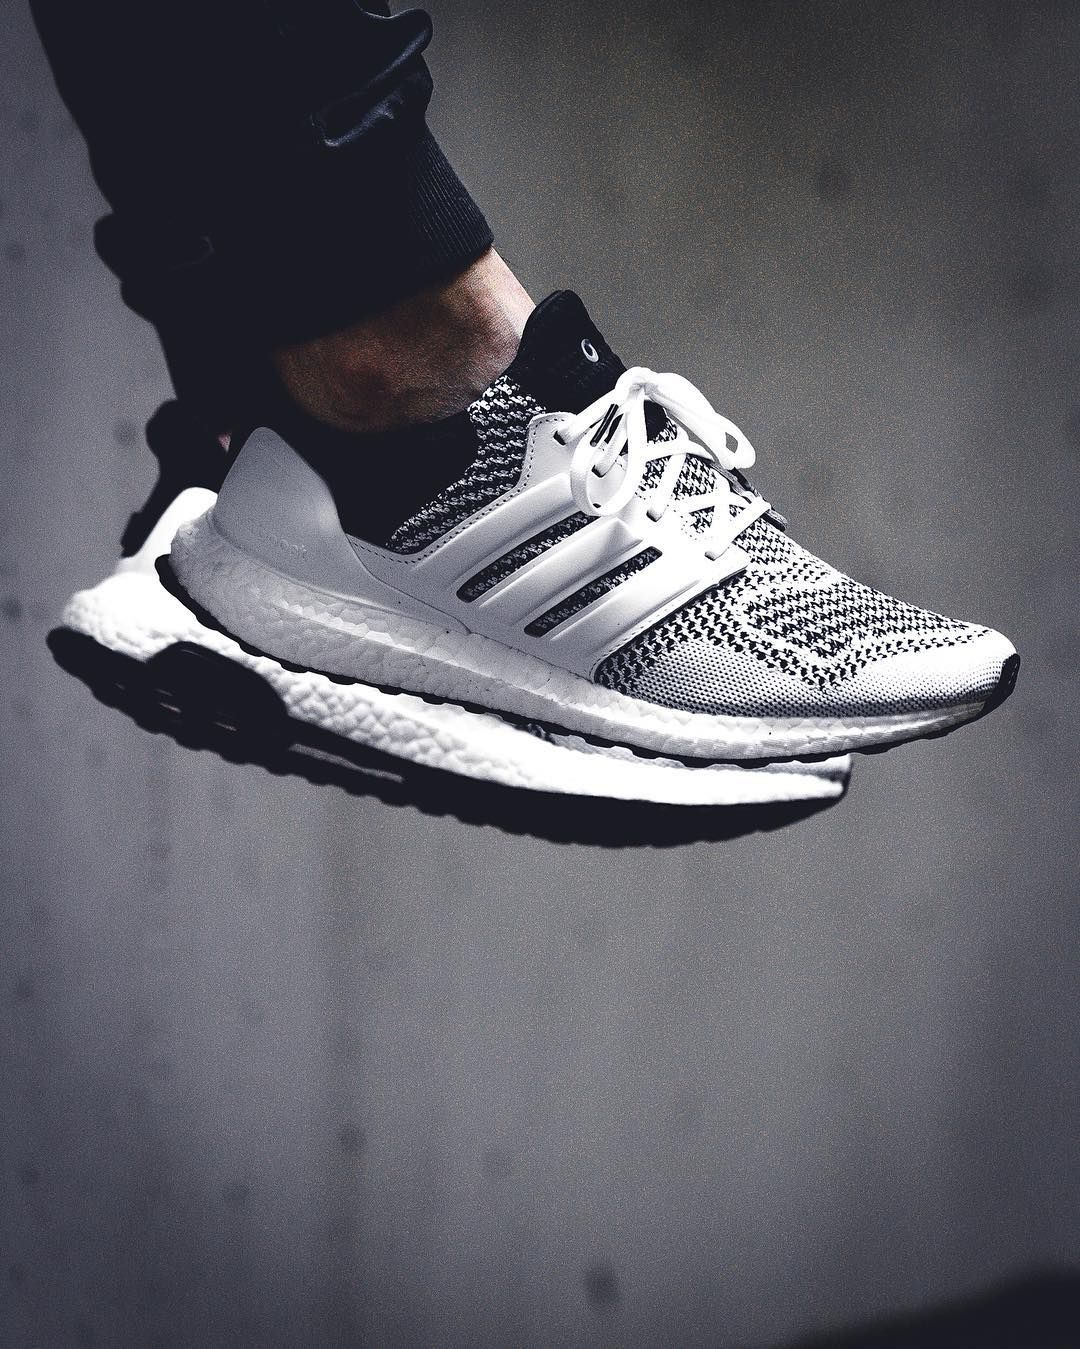 Sneakersnstuff x Adidas Ultra Boost - 2016